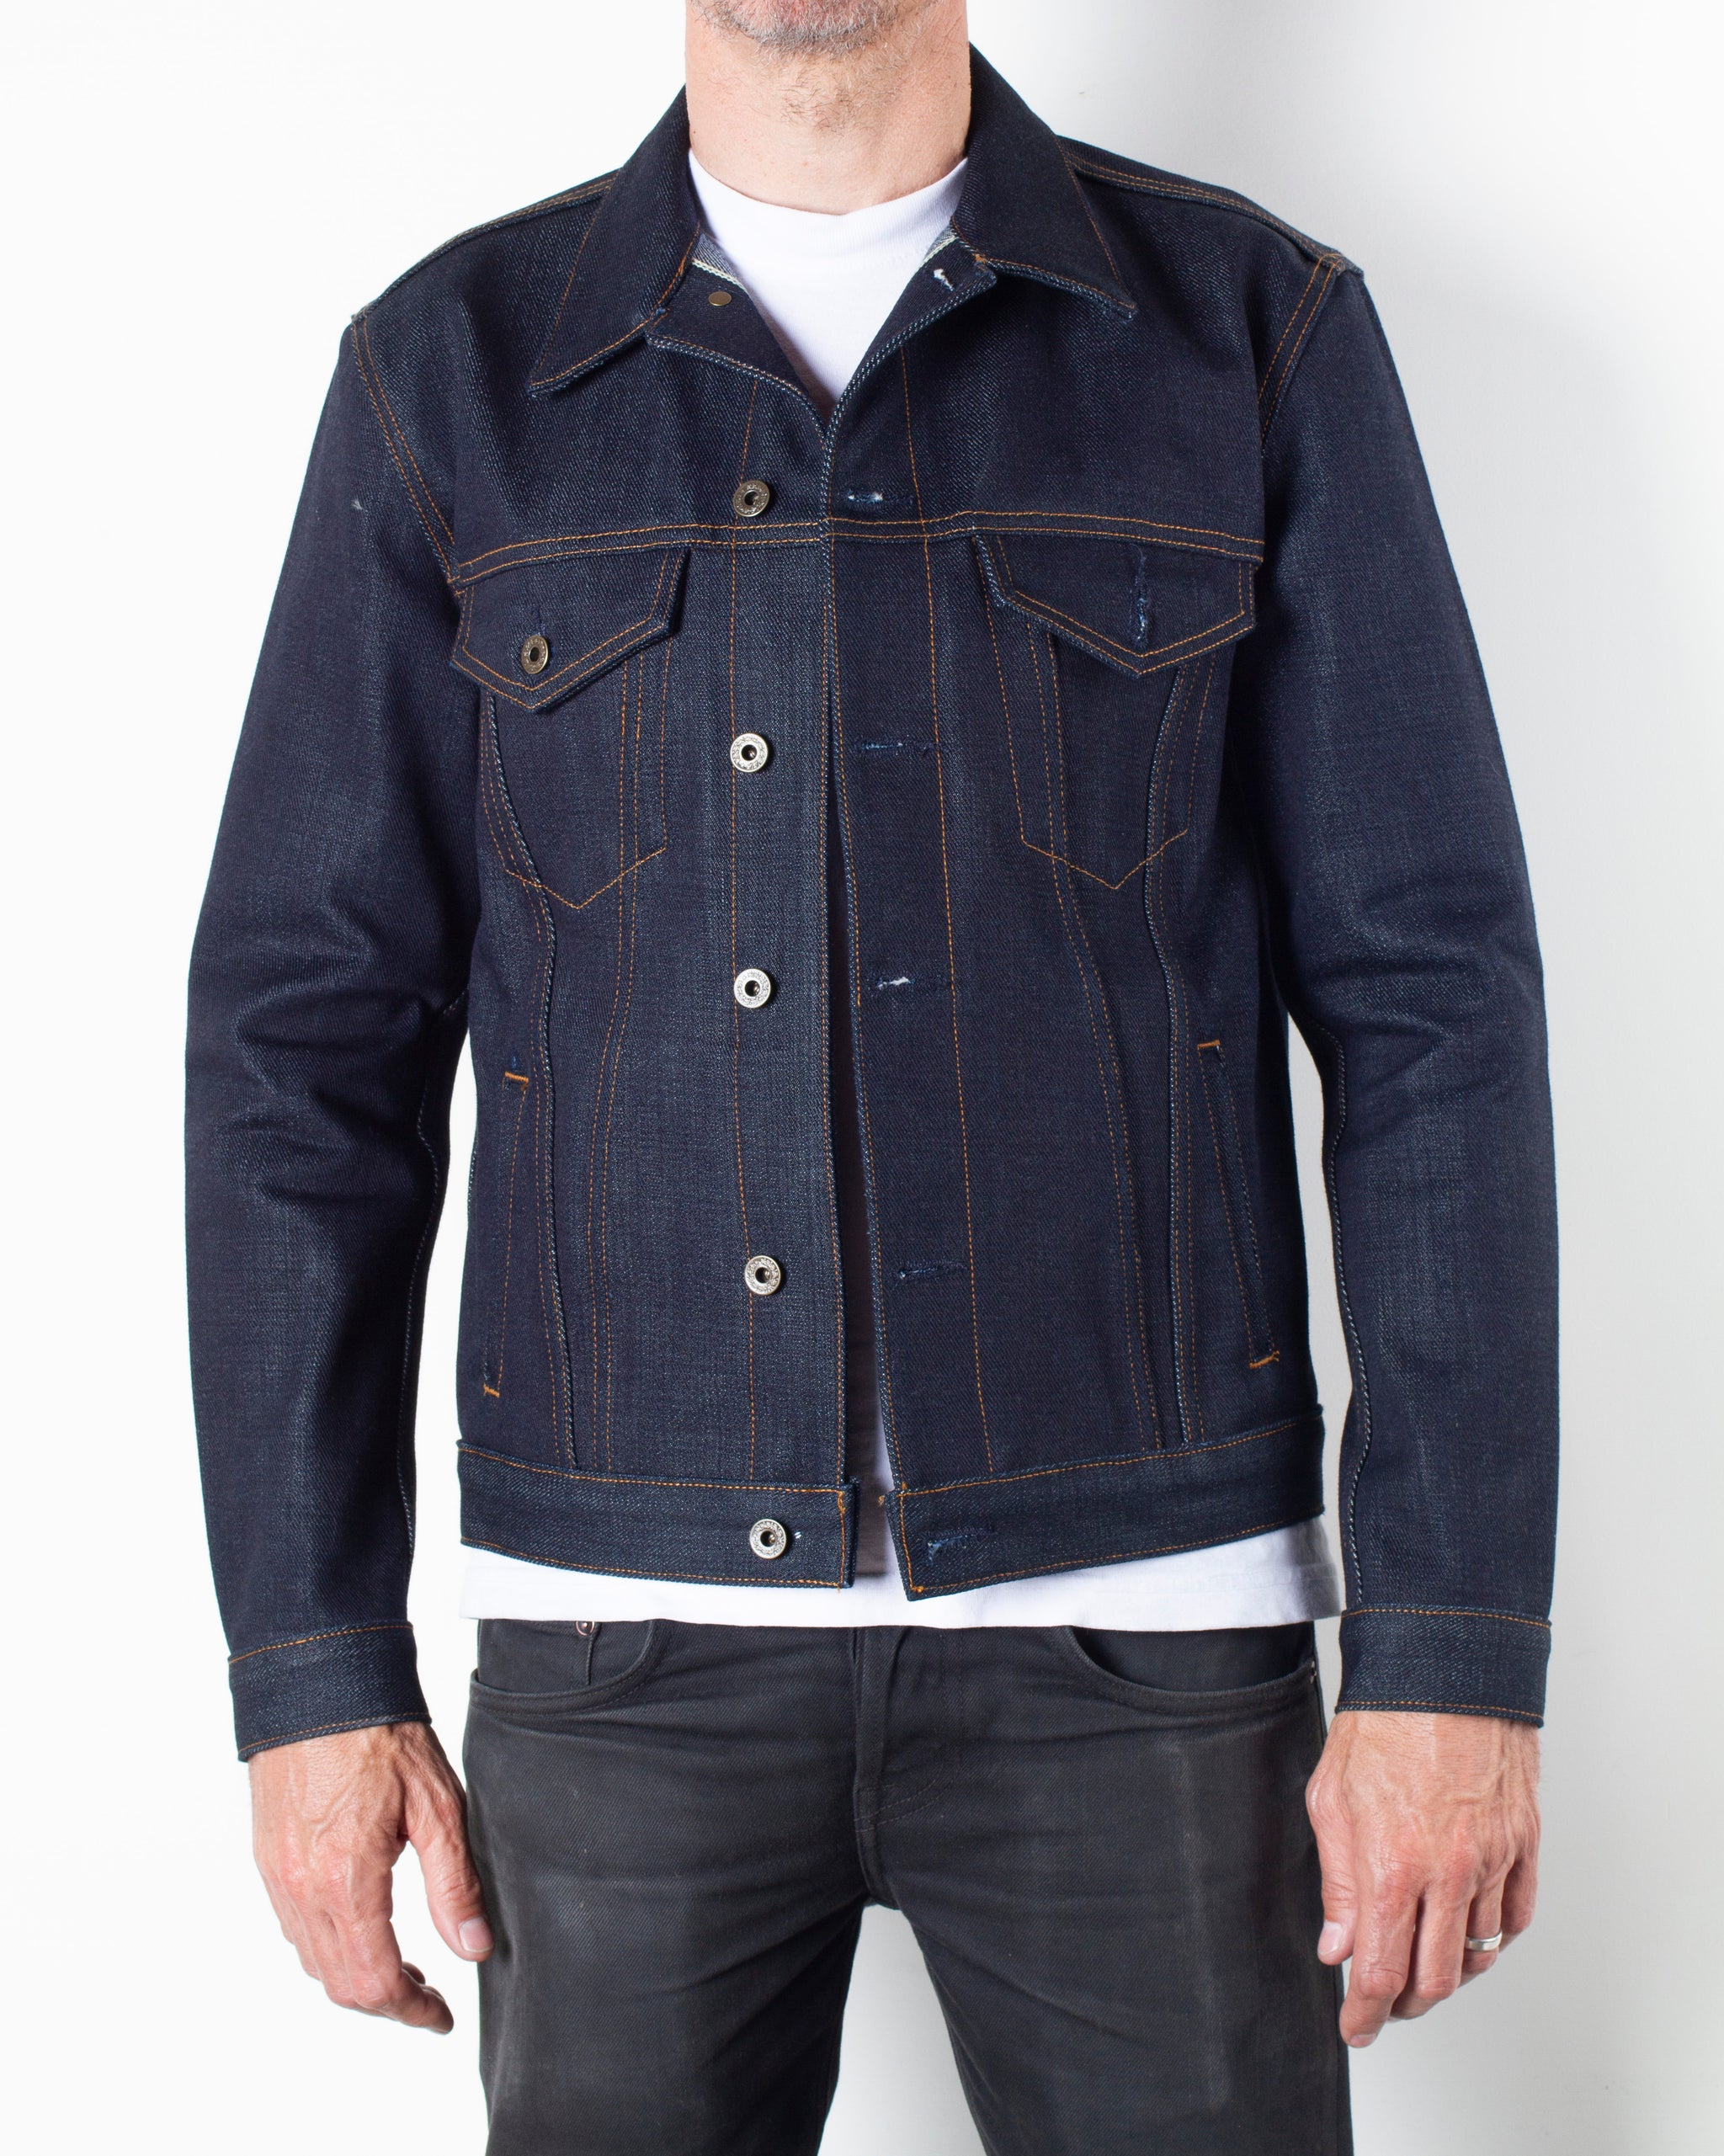 The Ironside 21.5oz Heavyweight Selvage Denim Jacket